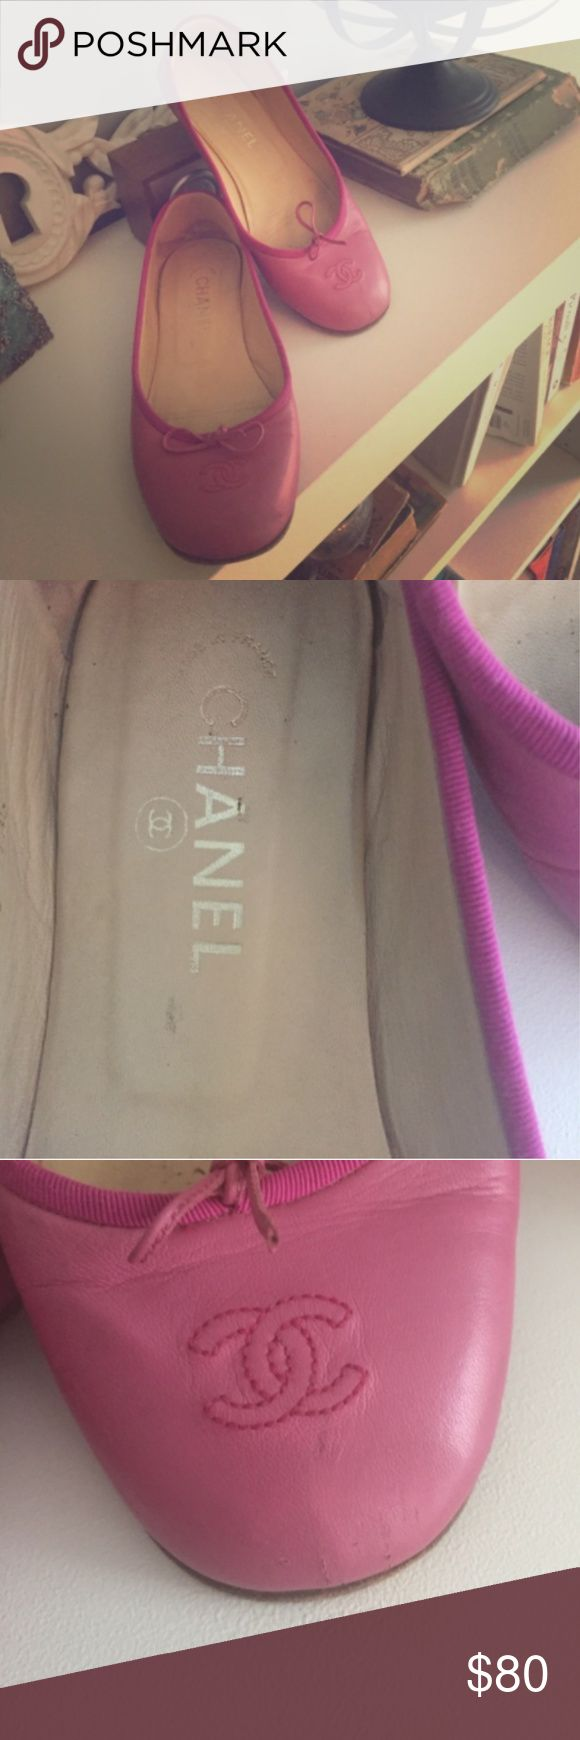 Chanel Flats Pre-loved Chanel flats! They are a light magenta/pink color. Some wear, mostly to the toe. When worn, not that visible, but please see pictures. Feel free to ask questions! 😊 Size 40 but fits like a 9. PLEASE NOTE: Price is pretty firm.  I bought these on poshmark and they are in good condition, just a little wide for my feet :) CHANEL Shoes Flats & Loafers